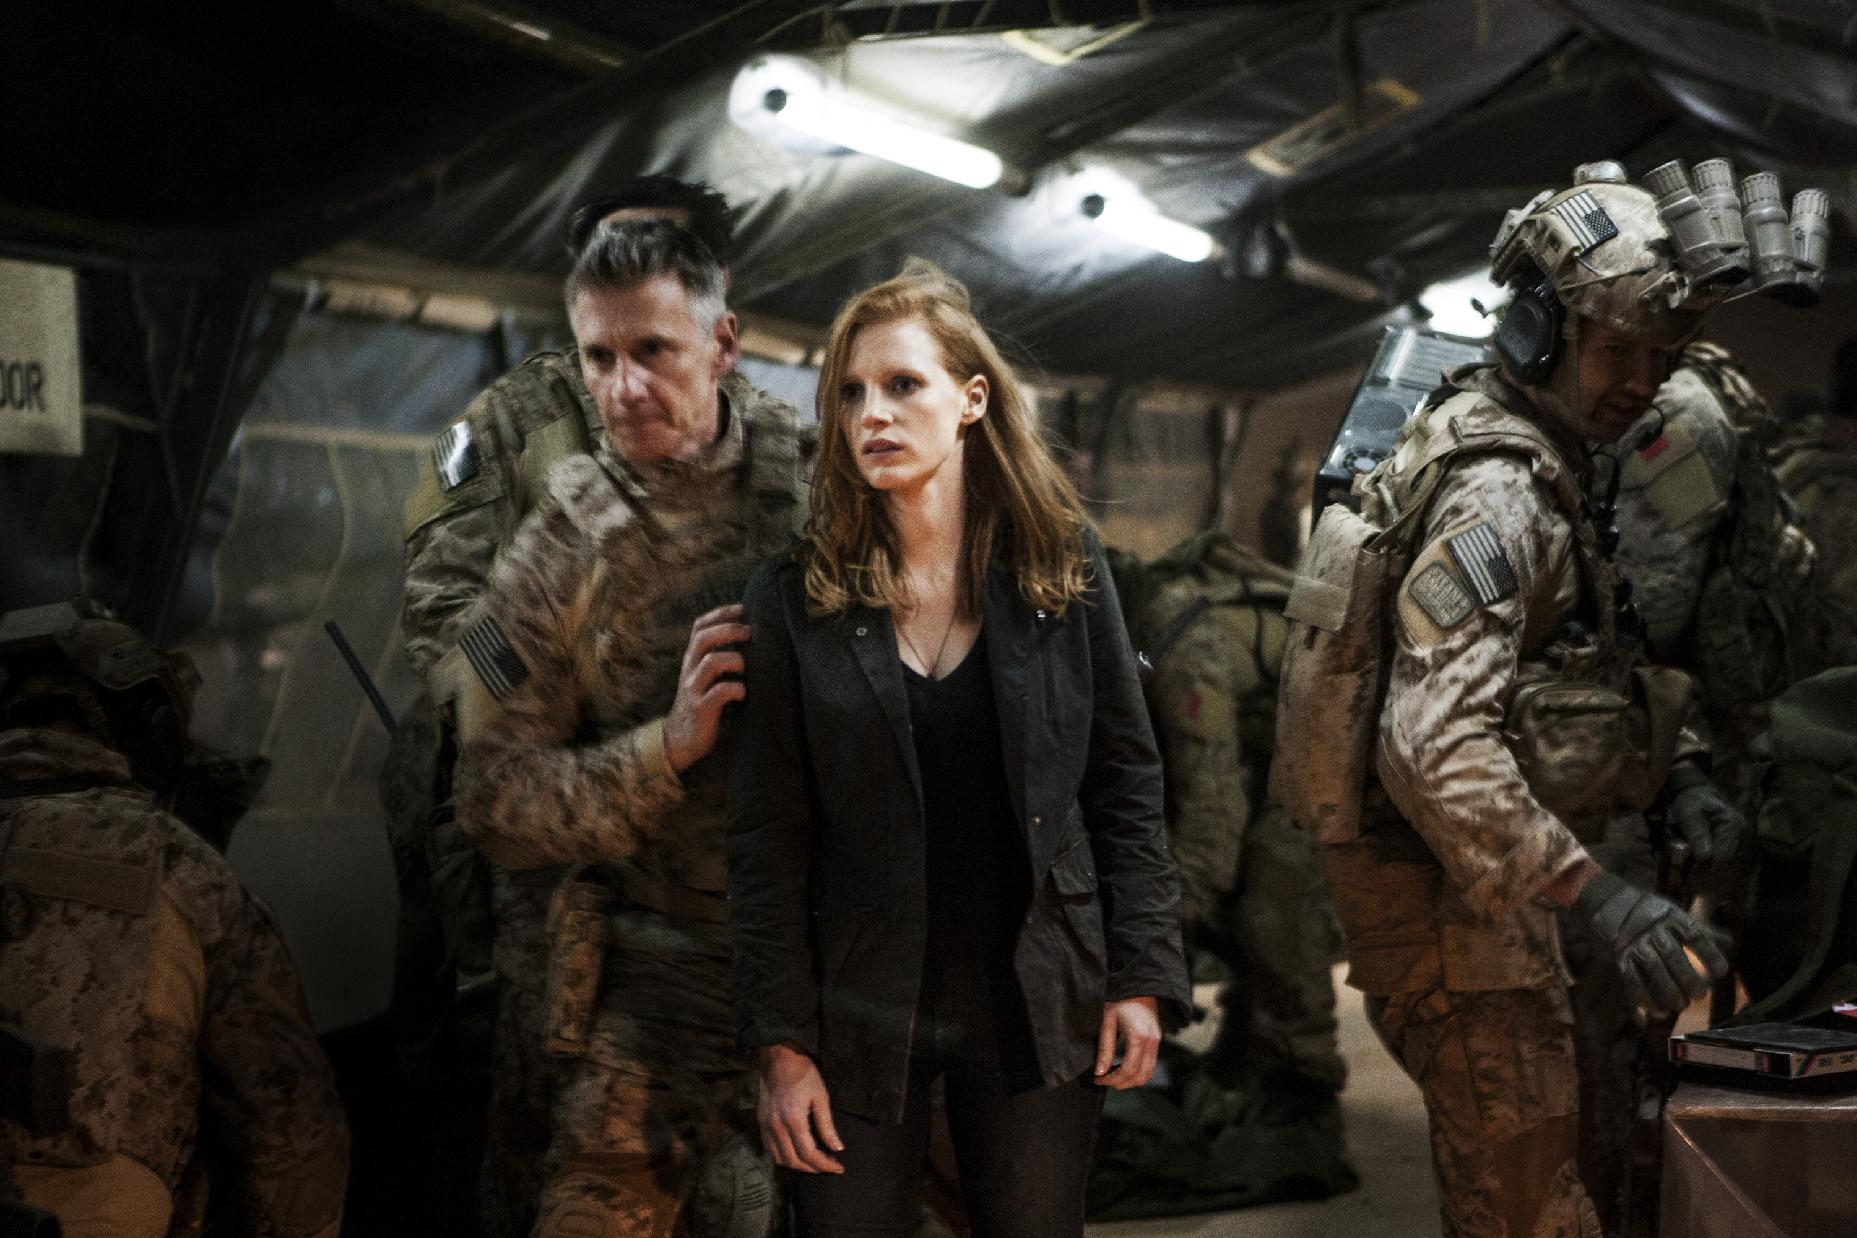 In this undated publicity photo released by Columbia Pictures Industries, Inc., Jessica Chastain, center, plays a member of the elite team of spies and military operatives, stationed in a covert base overseas, with Christopher Stanley, left, and Alex Corbet Burcher, right, who secretly devote themselves to finding Osama Bin Laden in Columbia Pictures' new thriller,